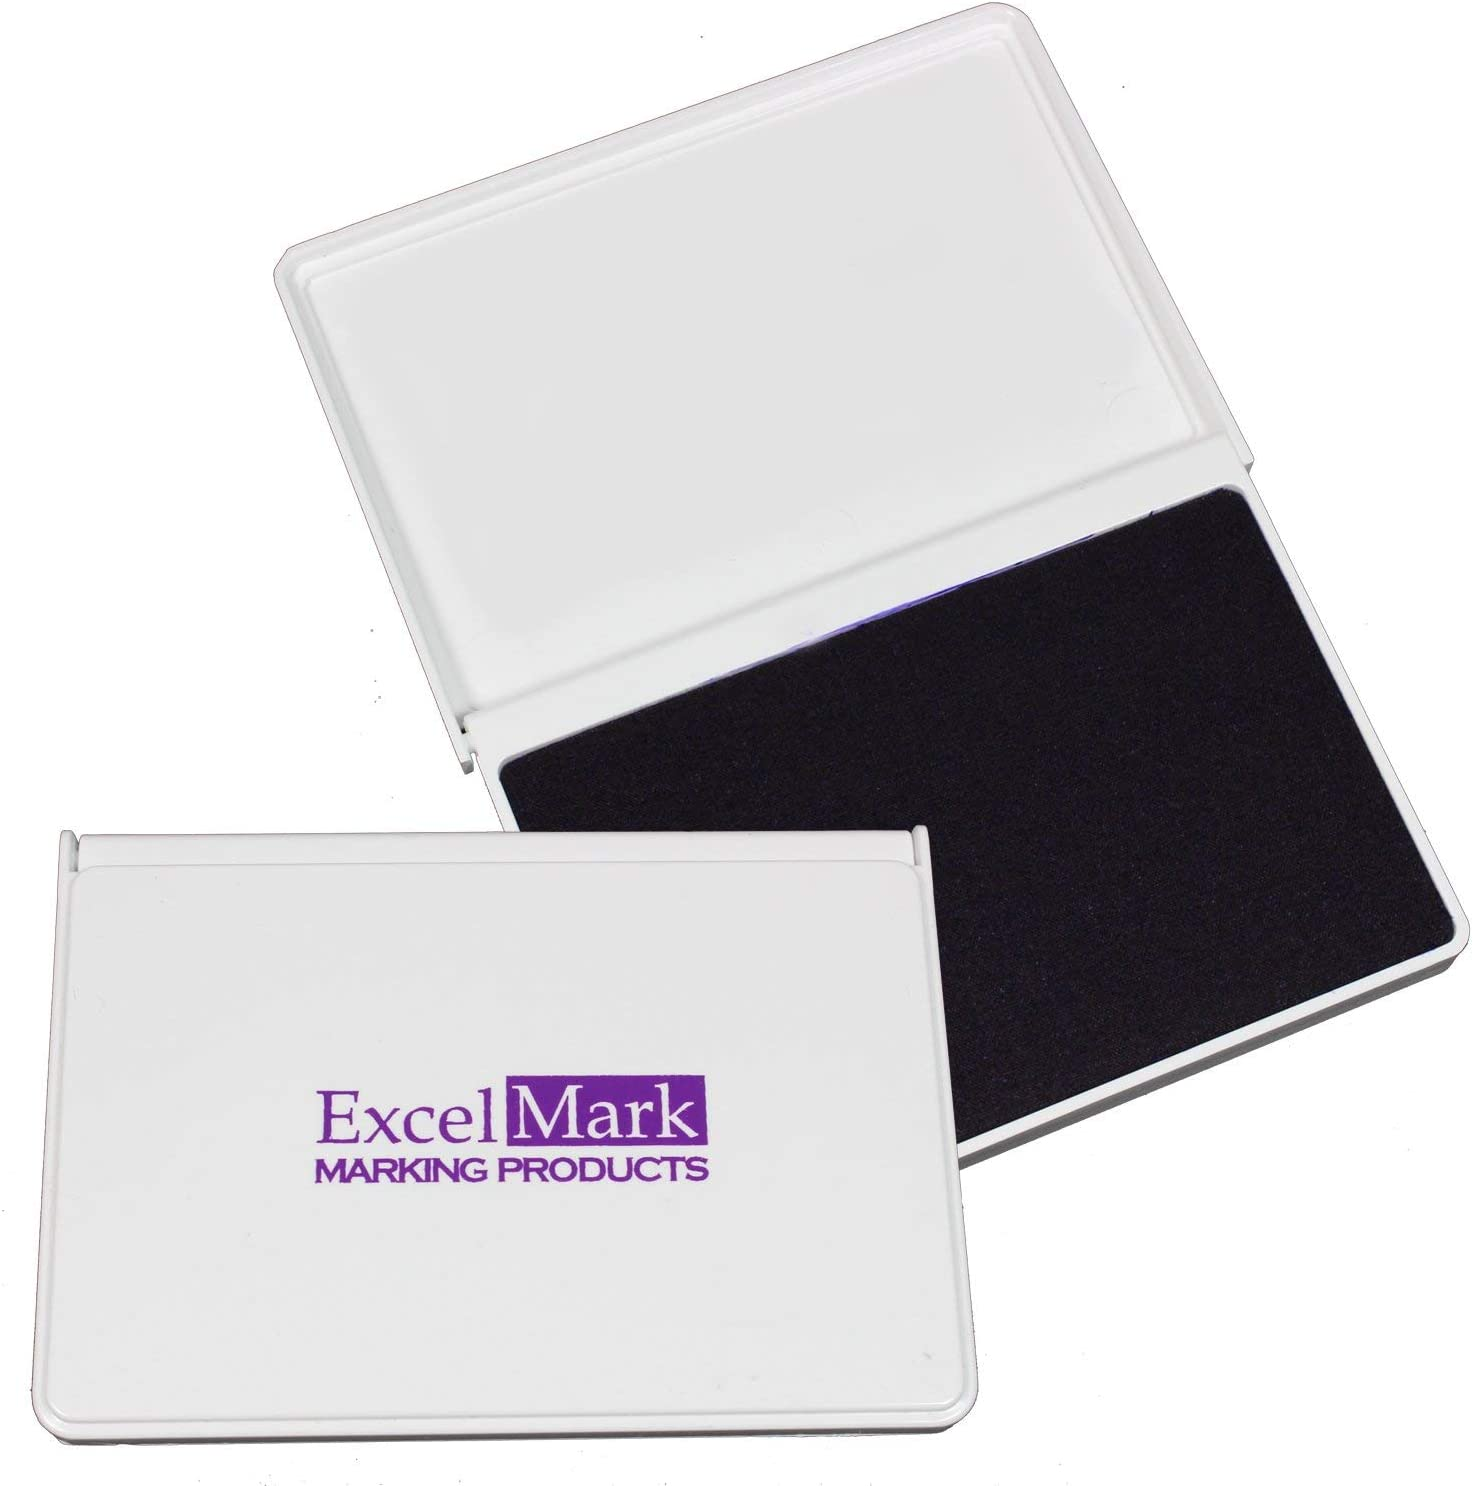 ExcelMark Ink Pad for Rubber Stamps 2-1/8